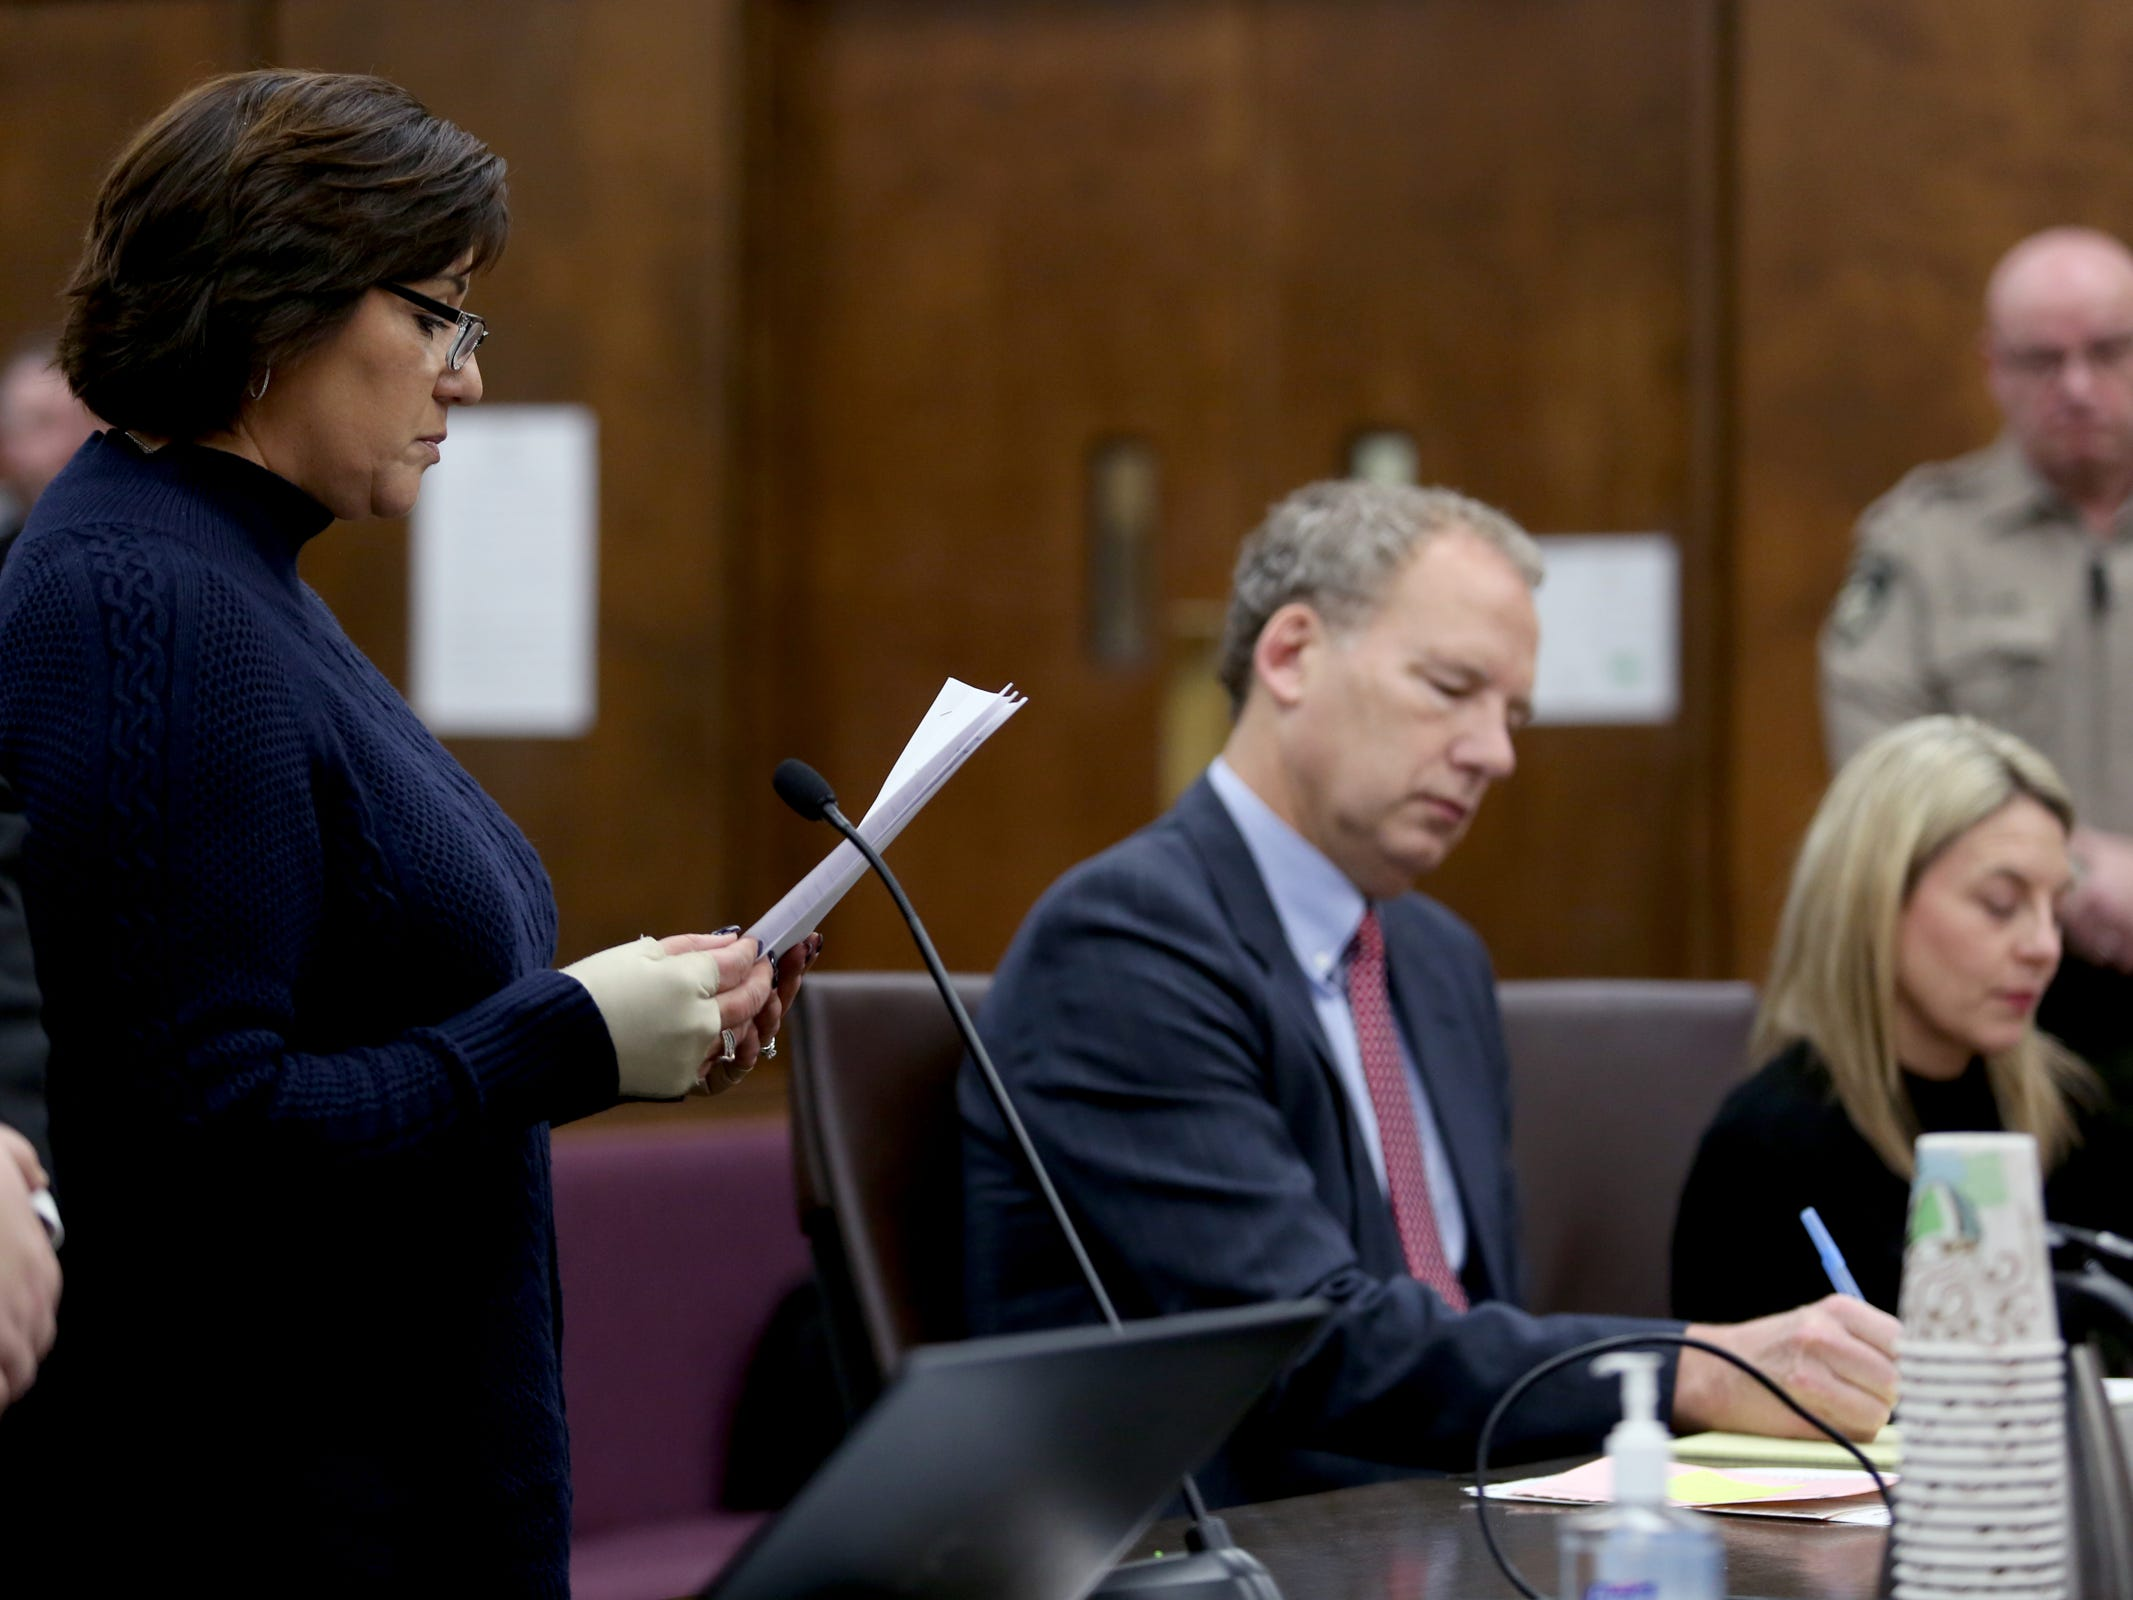 Annmarie Ruiz reads a statement from Peggy Holland as Jennifer Weathers enters a guilty plea for driving under the influence on the night of her daughter's death in 2018 at the Yamhill County Courthouse in McMinnville on Tuesday, Feb. 5, 2019. Meighan Cordie died from blunt force trauma after jumping or falling out of the car her mother was driving while her 3-year-old daughter was also in the vehicle.